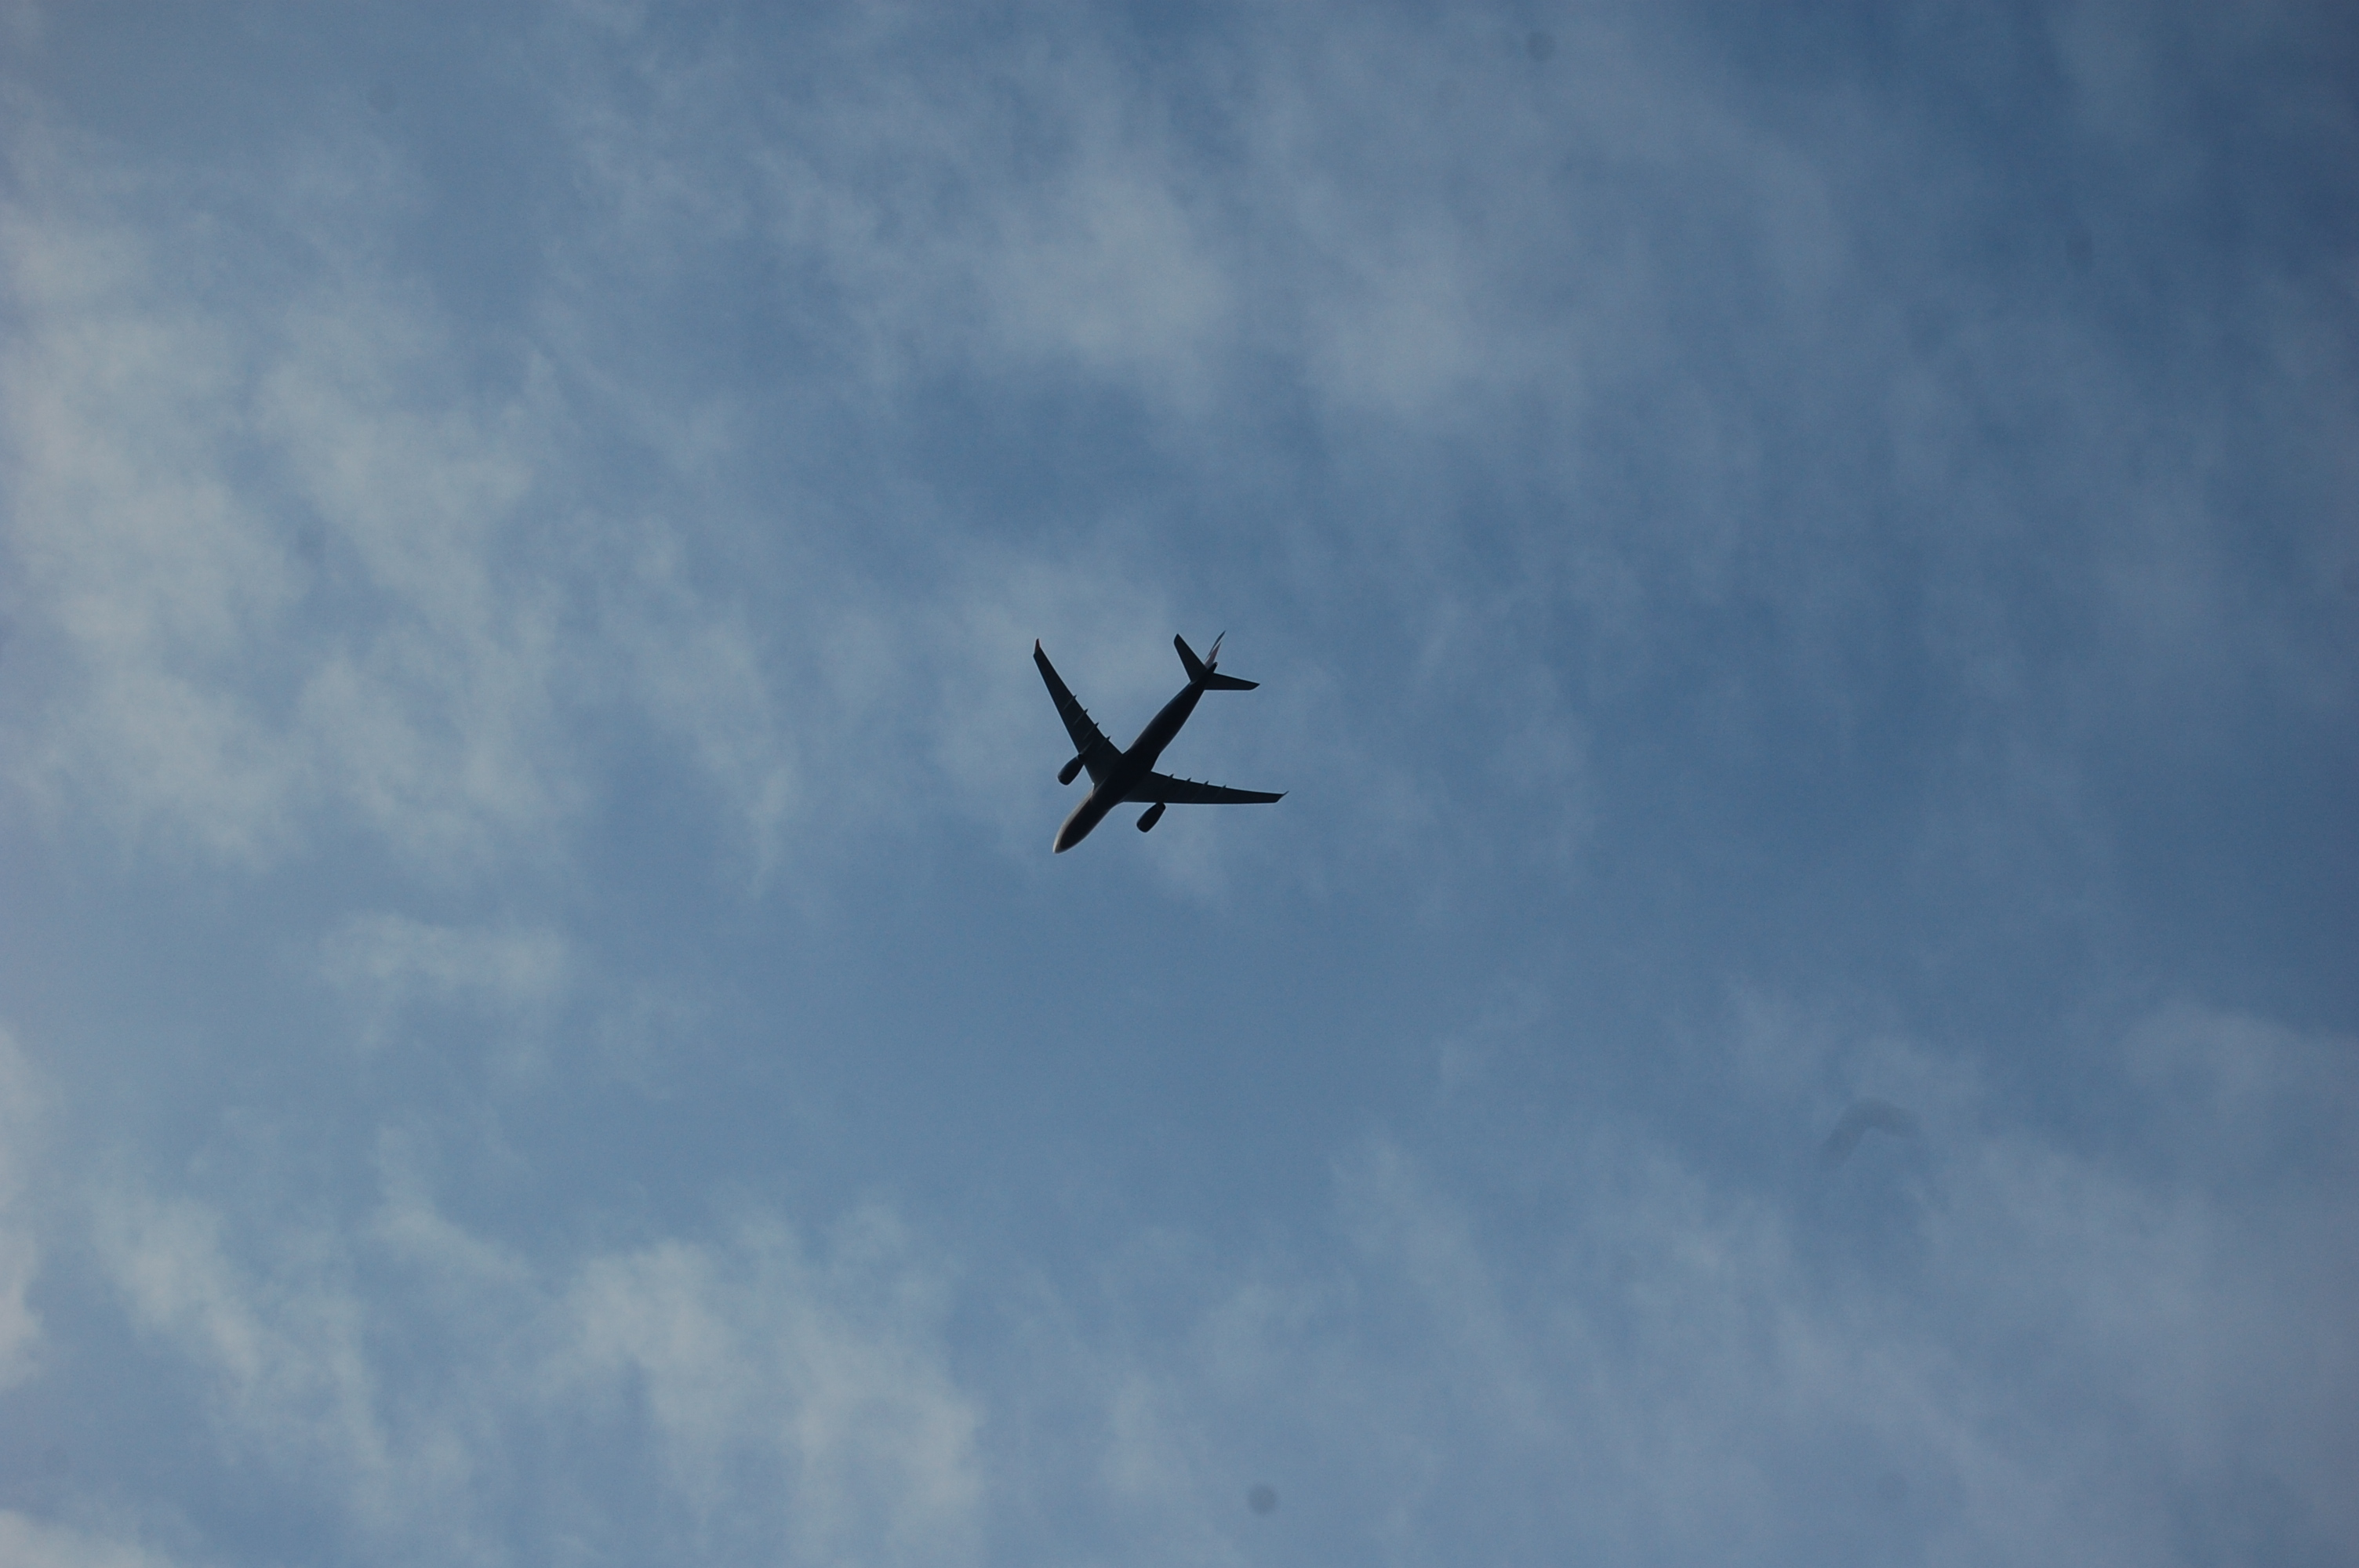 Due to the marina's proximity to LAX, you're also likely to see planes.